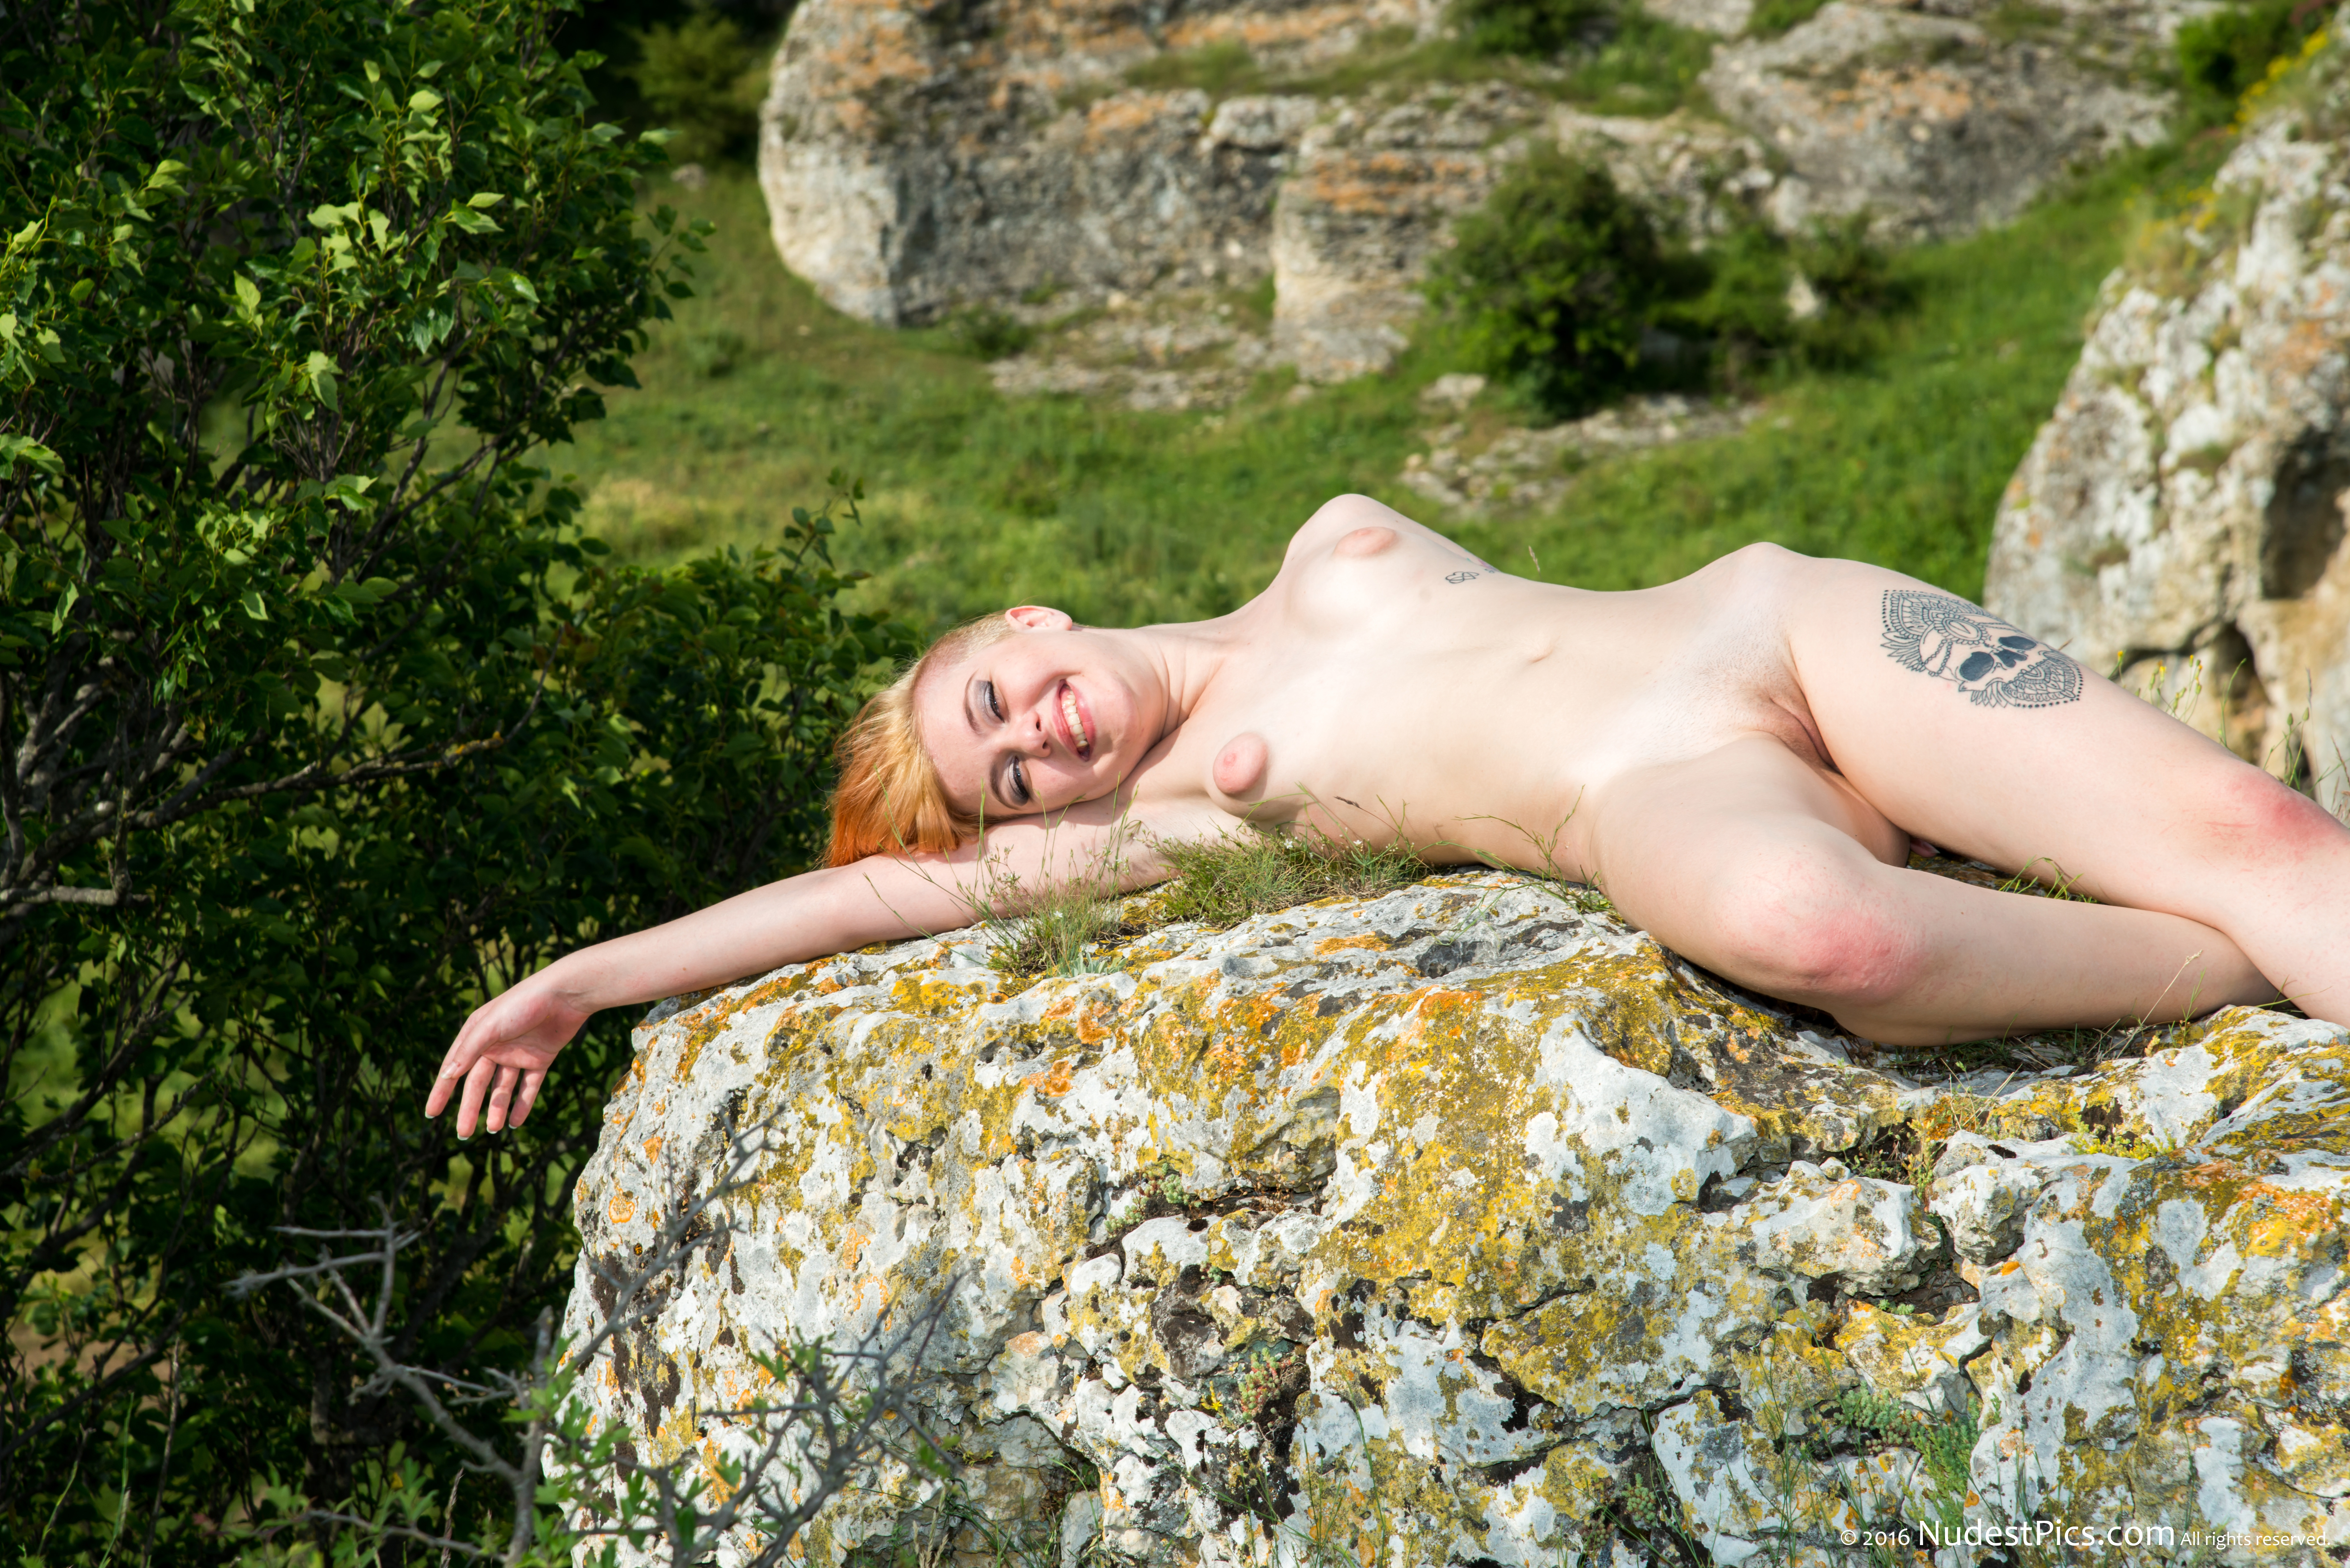 Cheerful Nudist Girl Sunbathing on a Rock